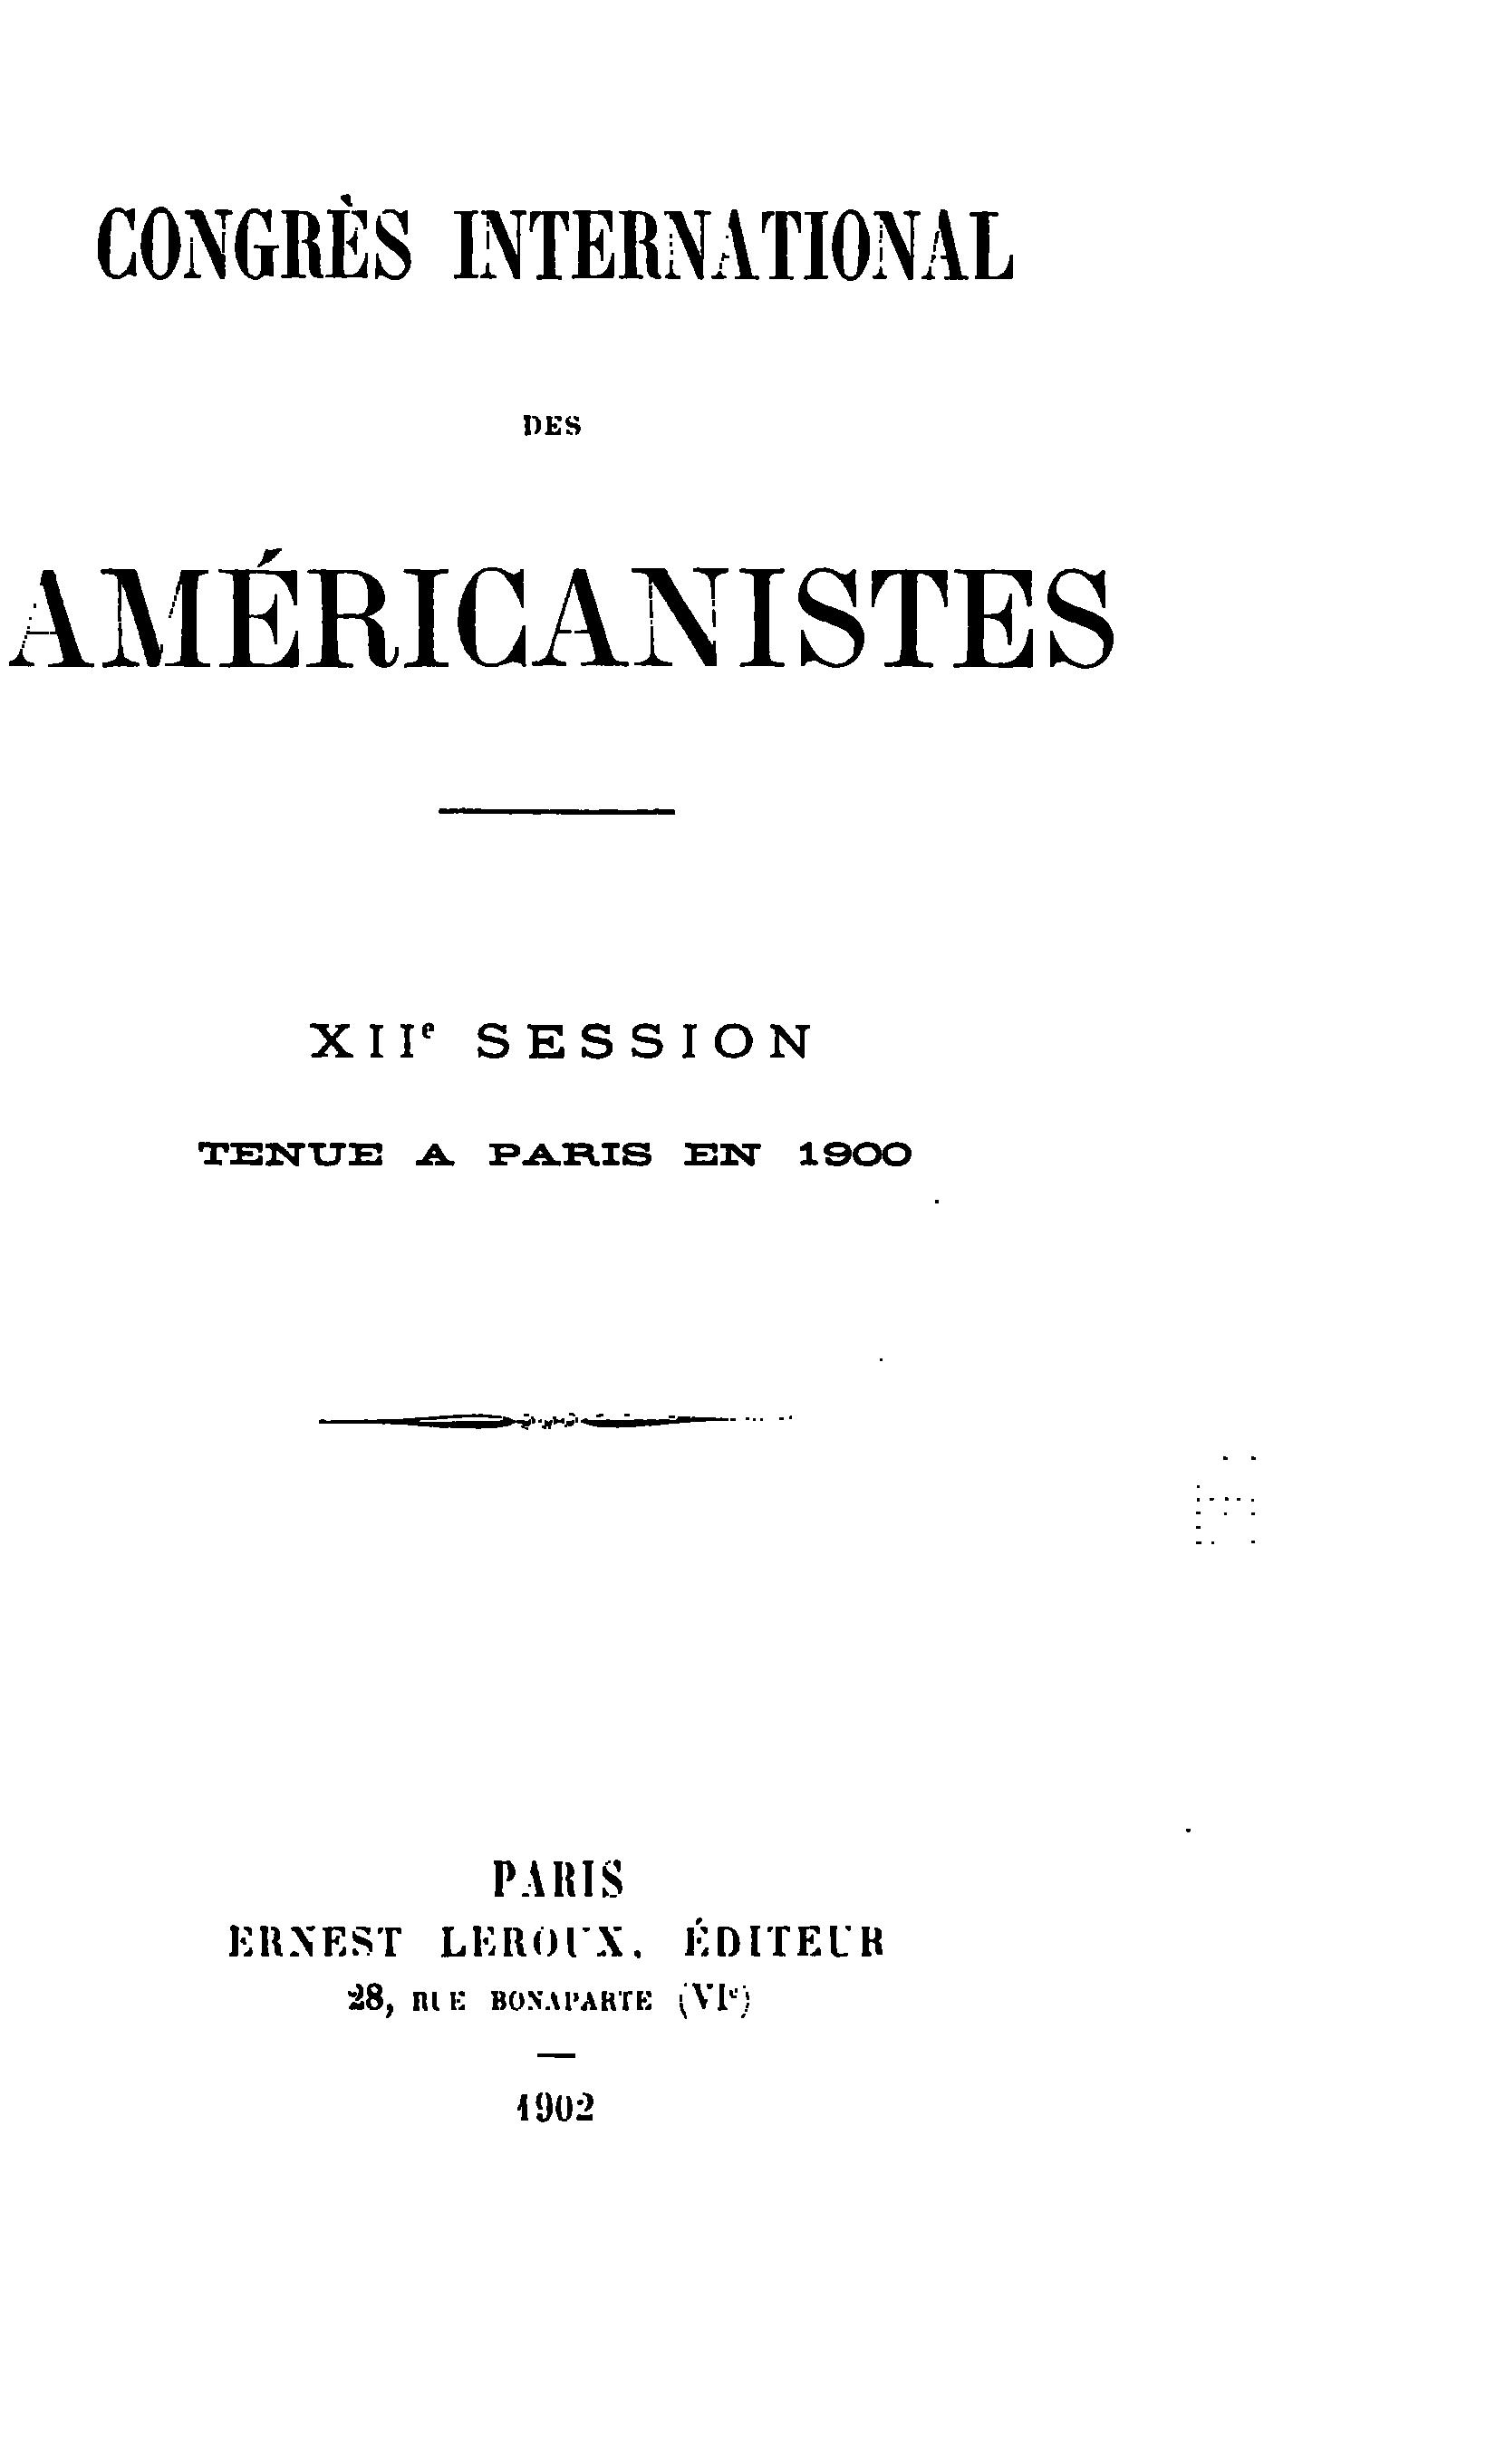 Congrès international des américanistes; XIIe session, tenue à Paris en 1900